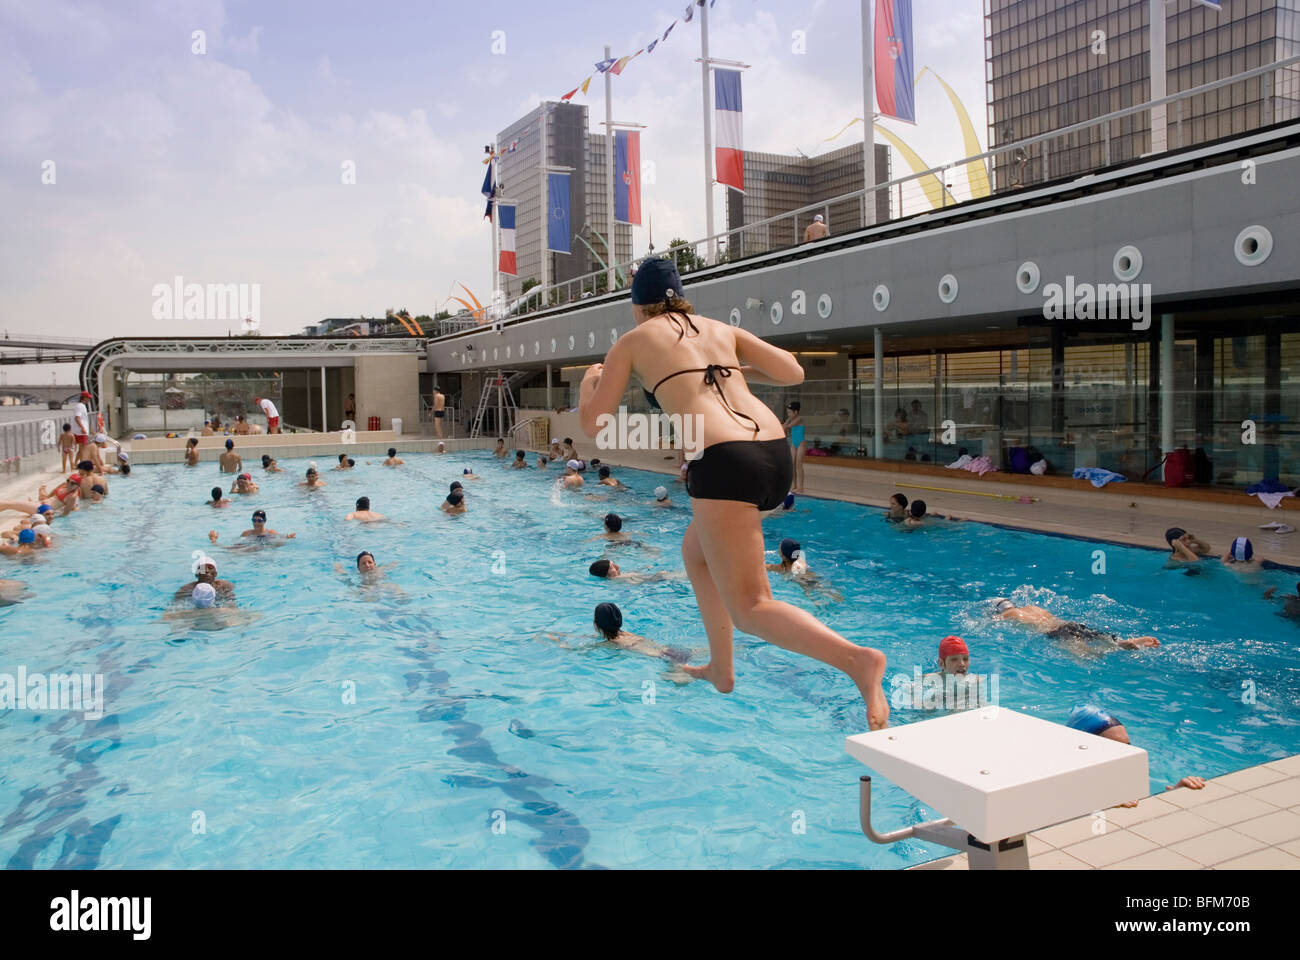 Piscine josephine baker floating swimming pool in the seine paris stock photo royalty free for Piscine josephine baker